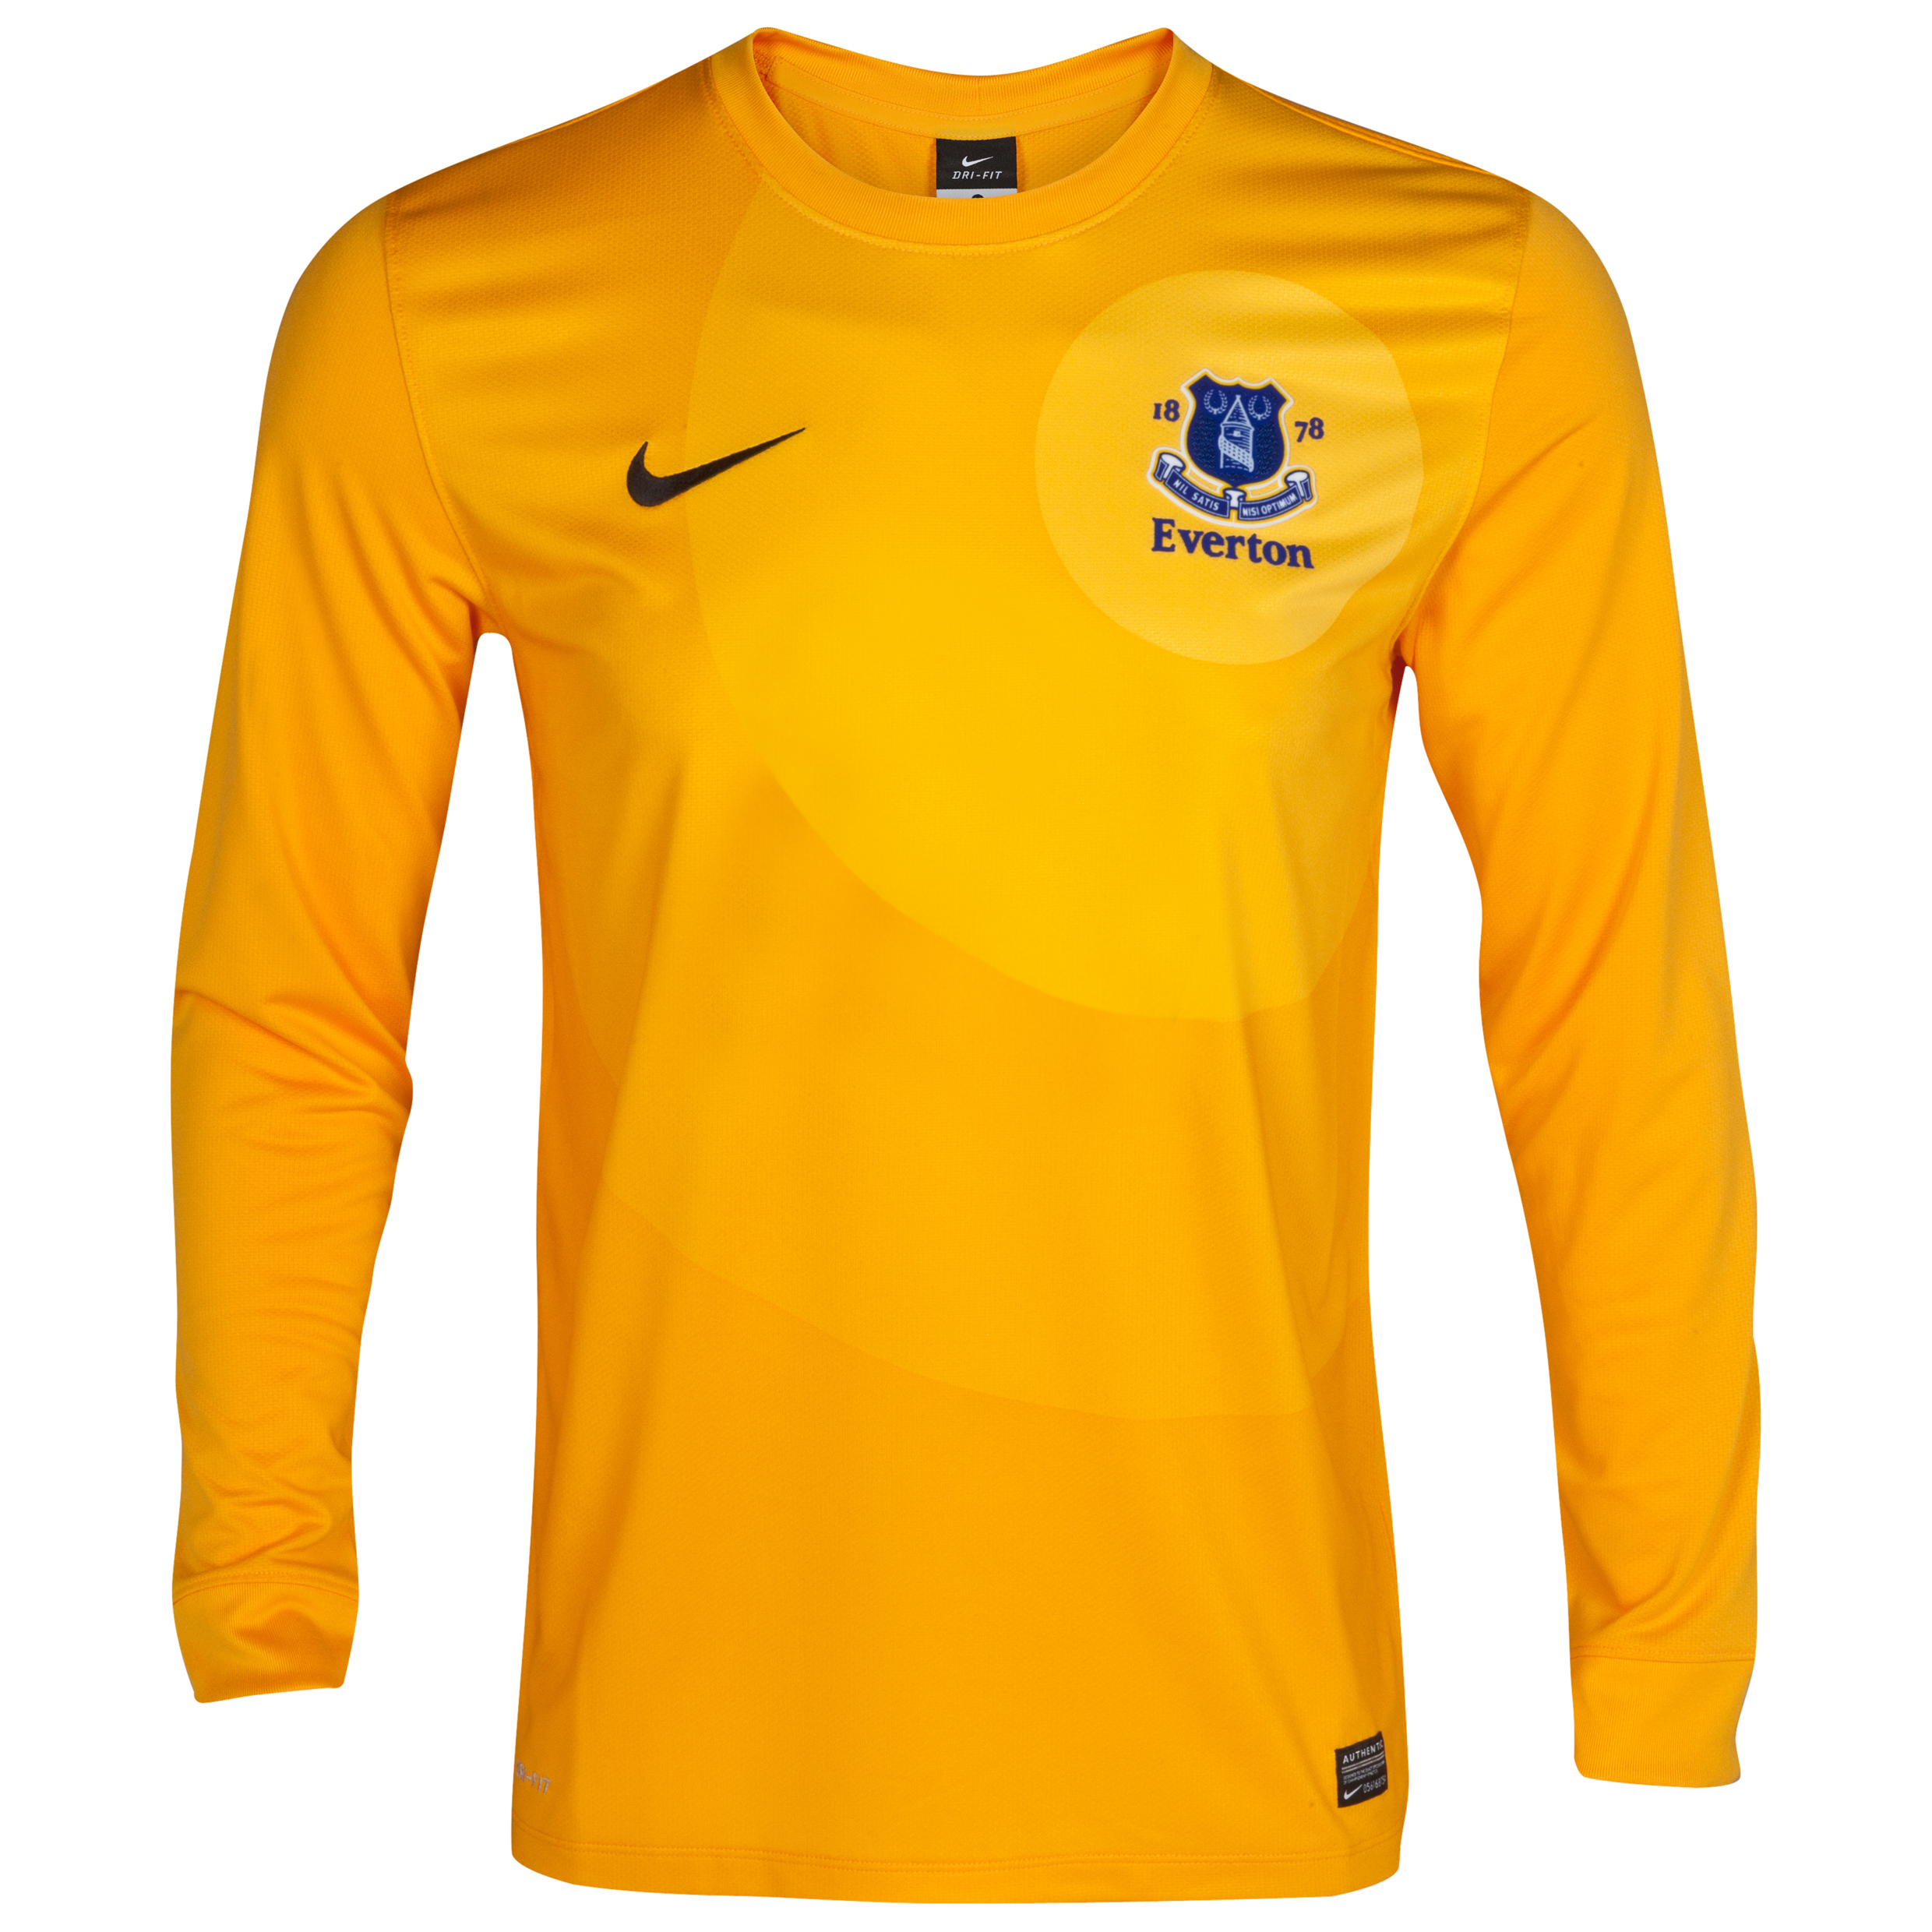 Everton Away Goalkeeper Shirt 2012/13 Junior